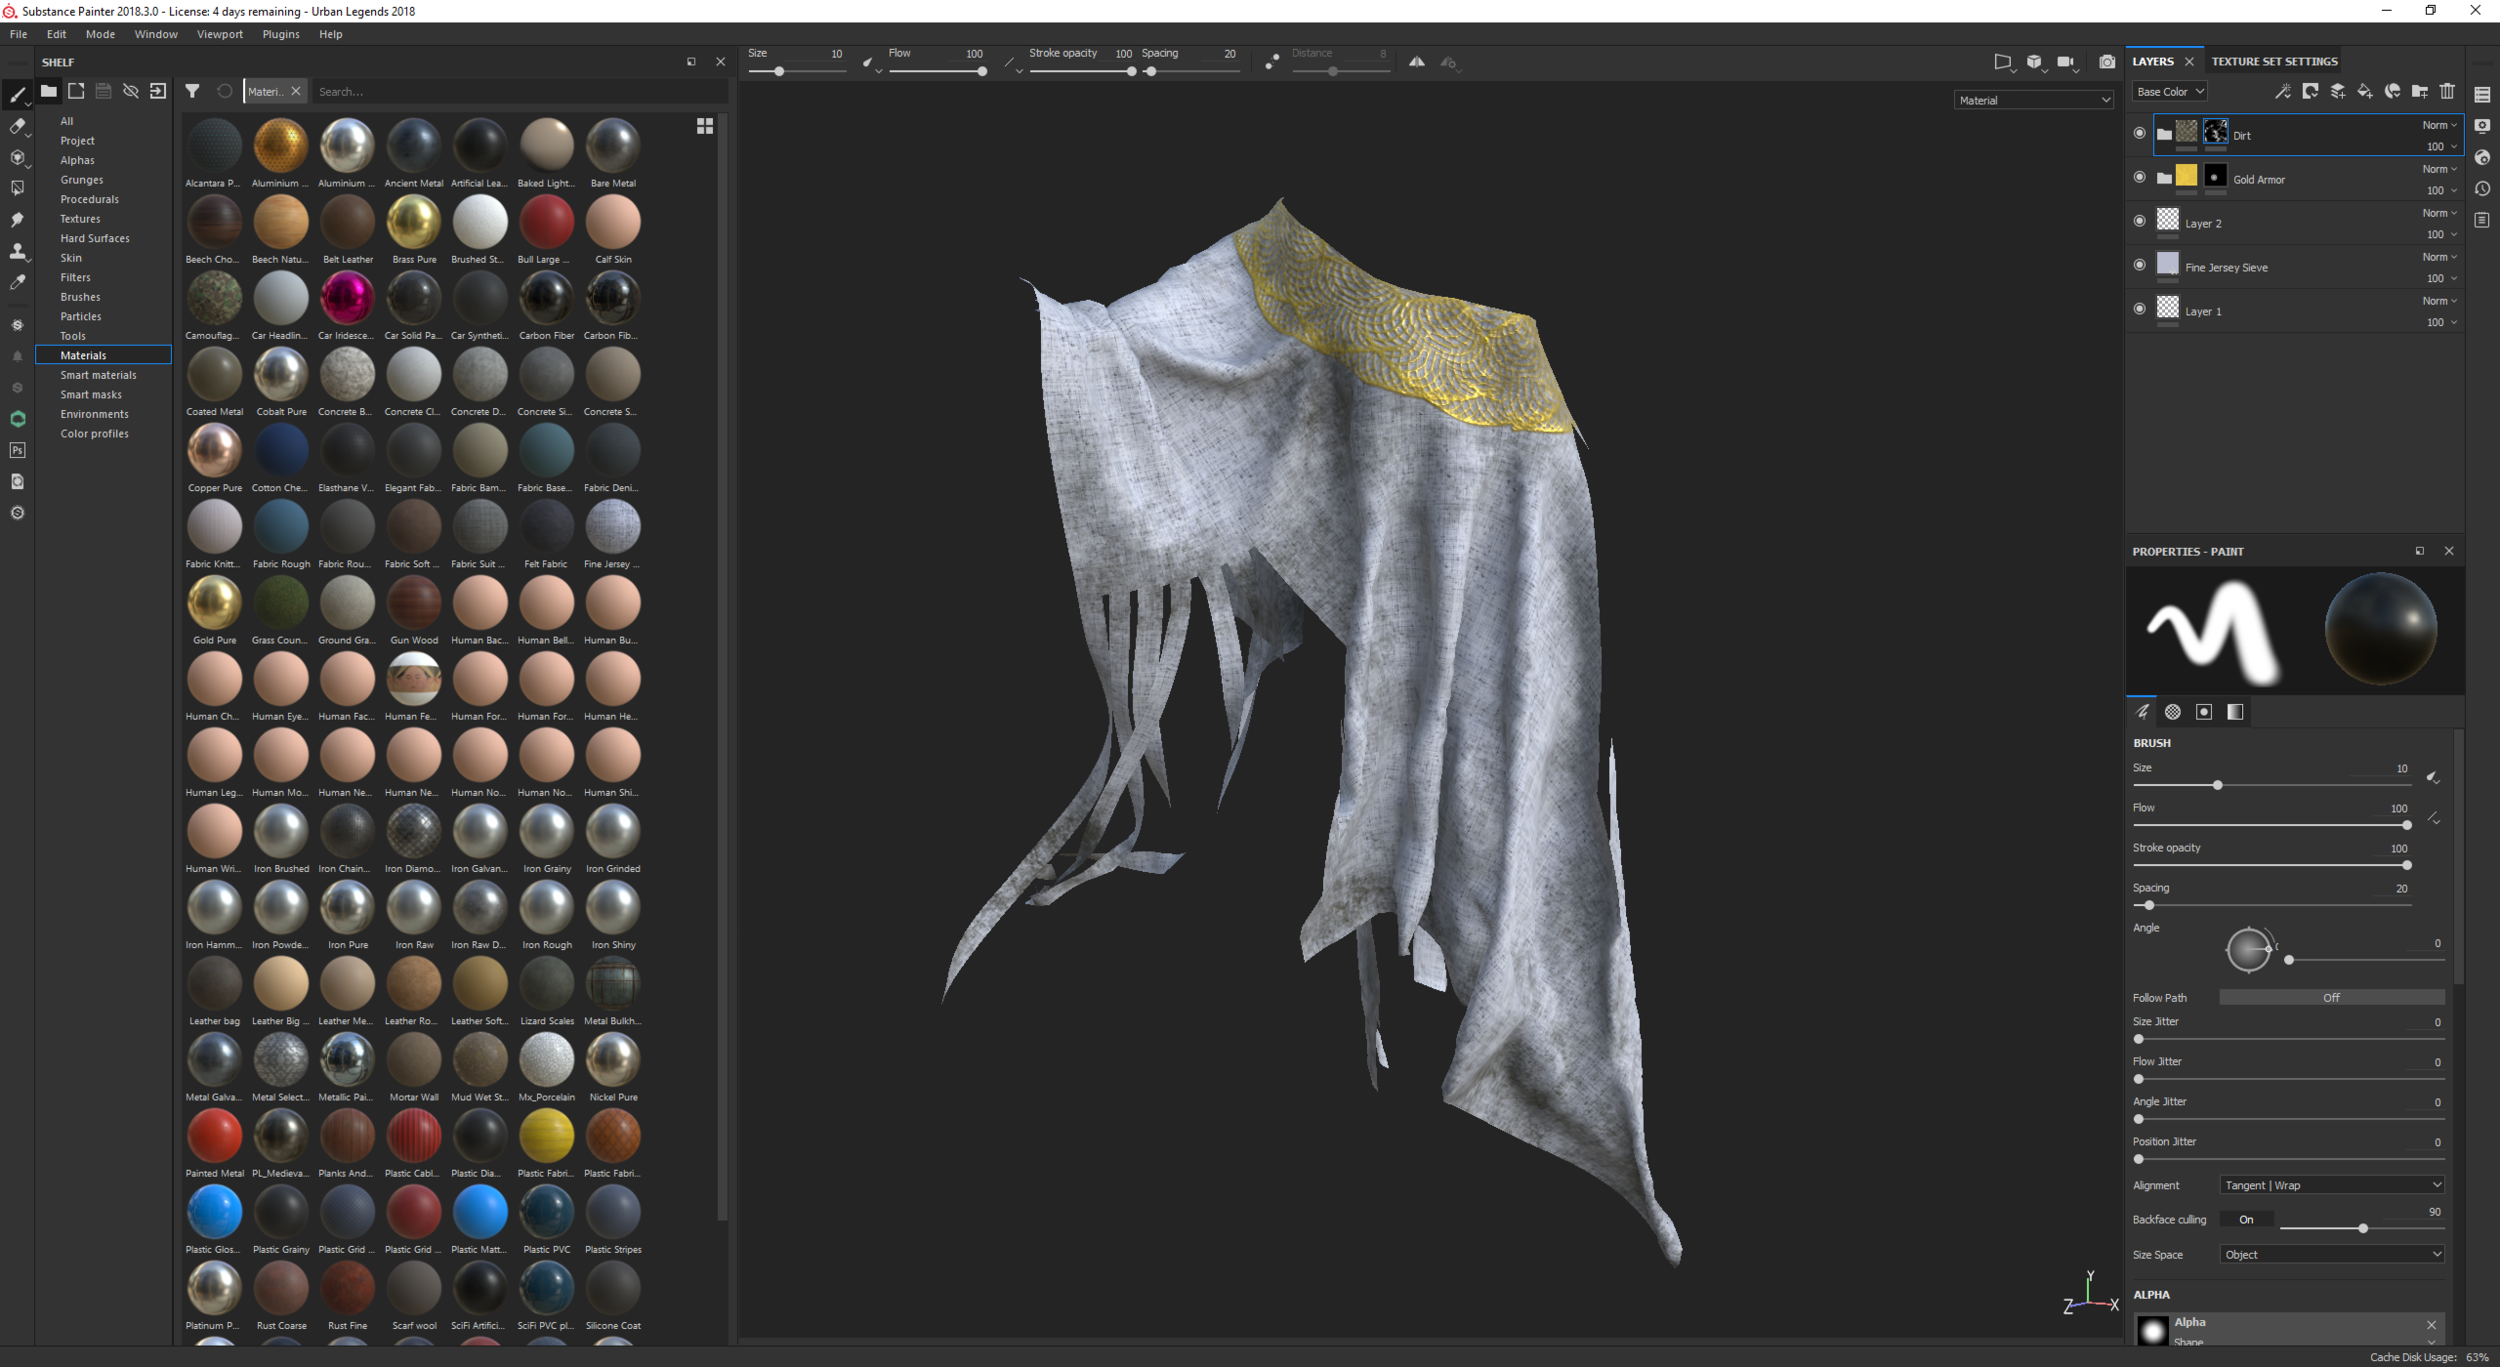 Substance_Painter_2018-12-04_20-45-52.png